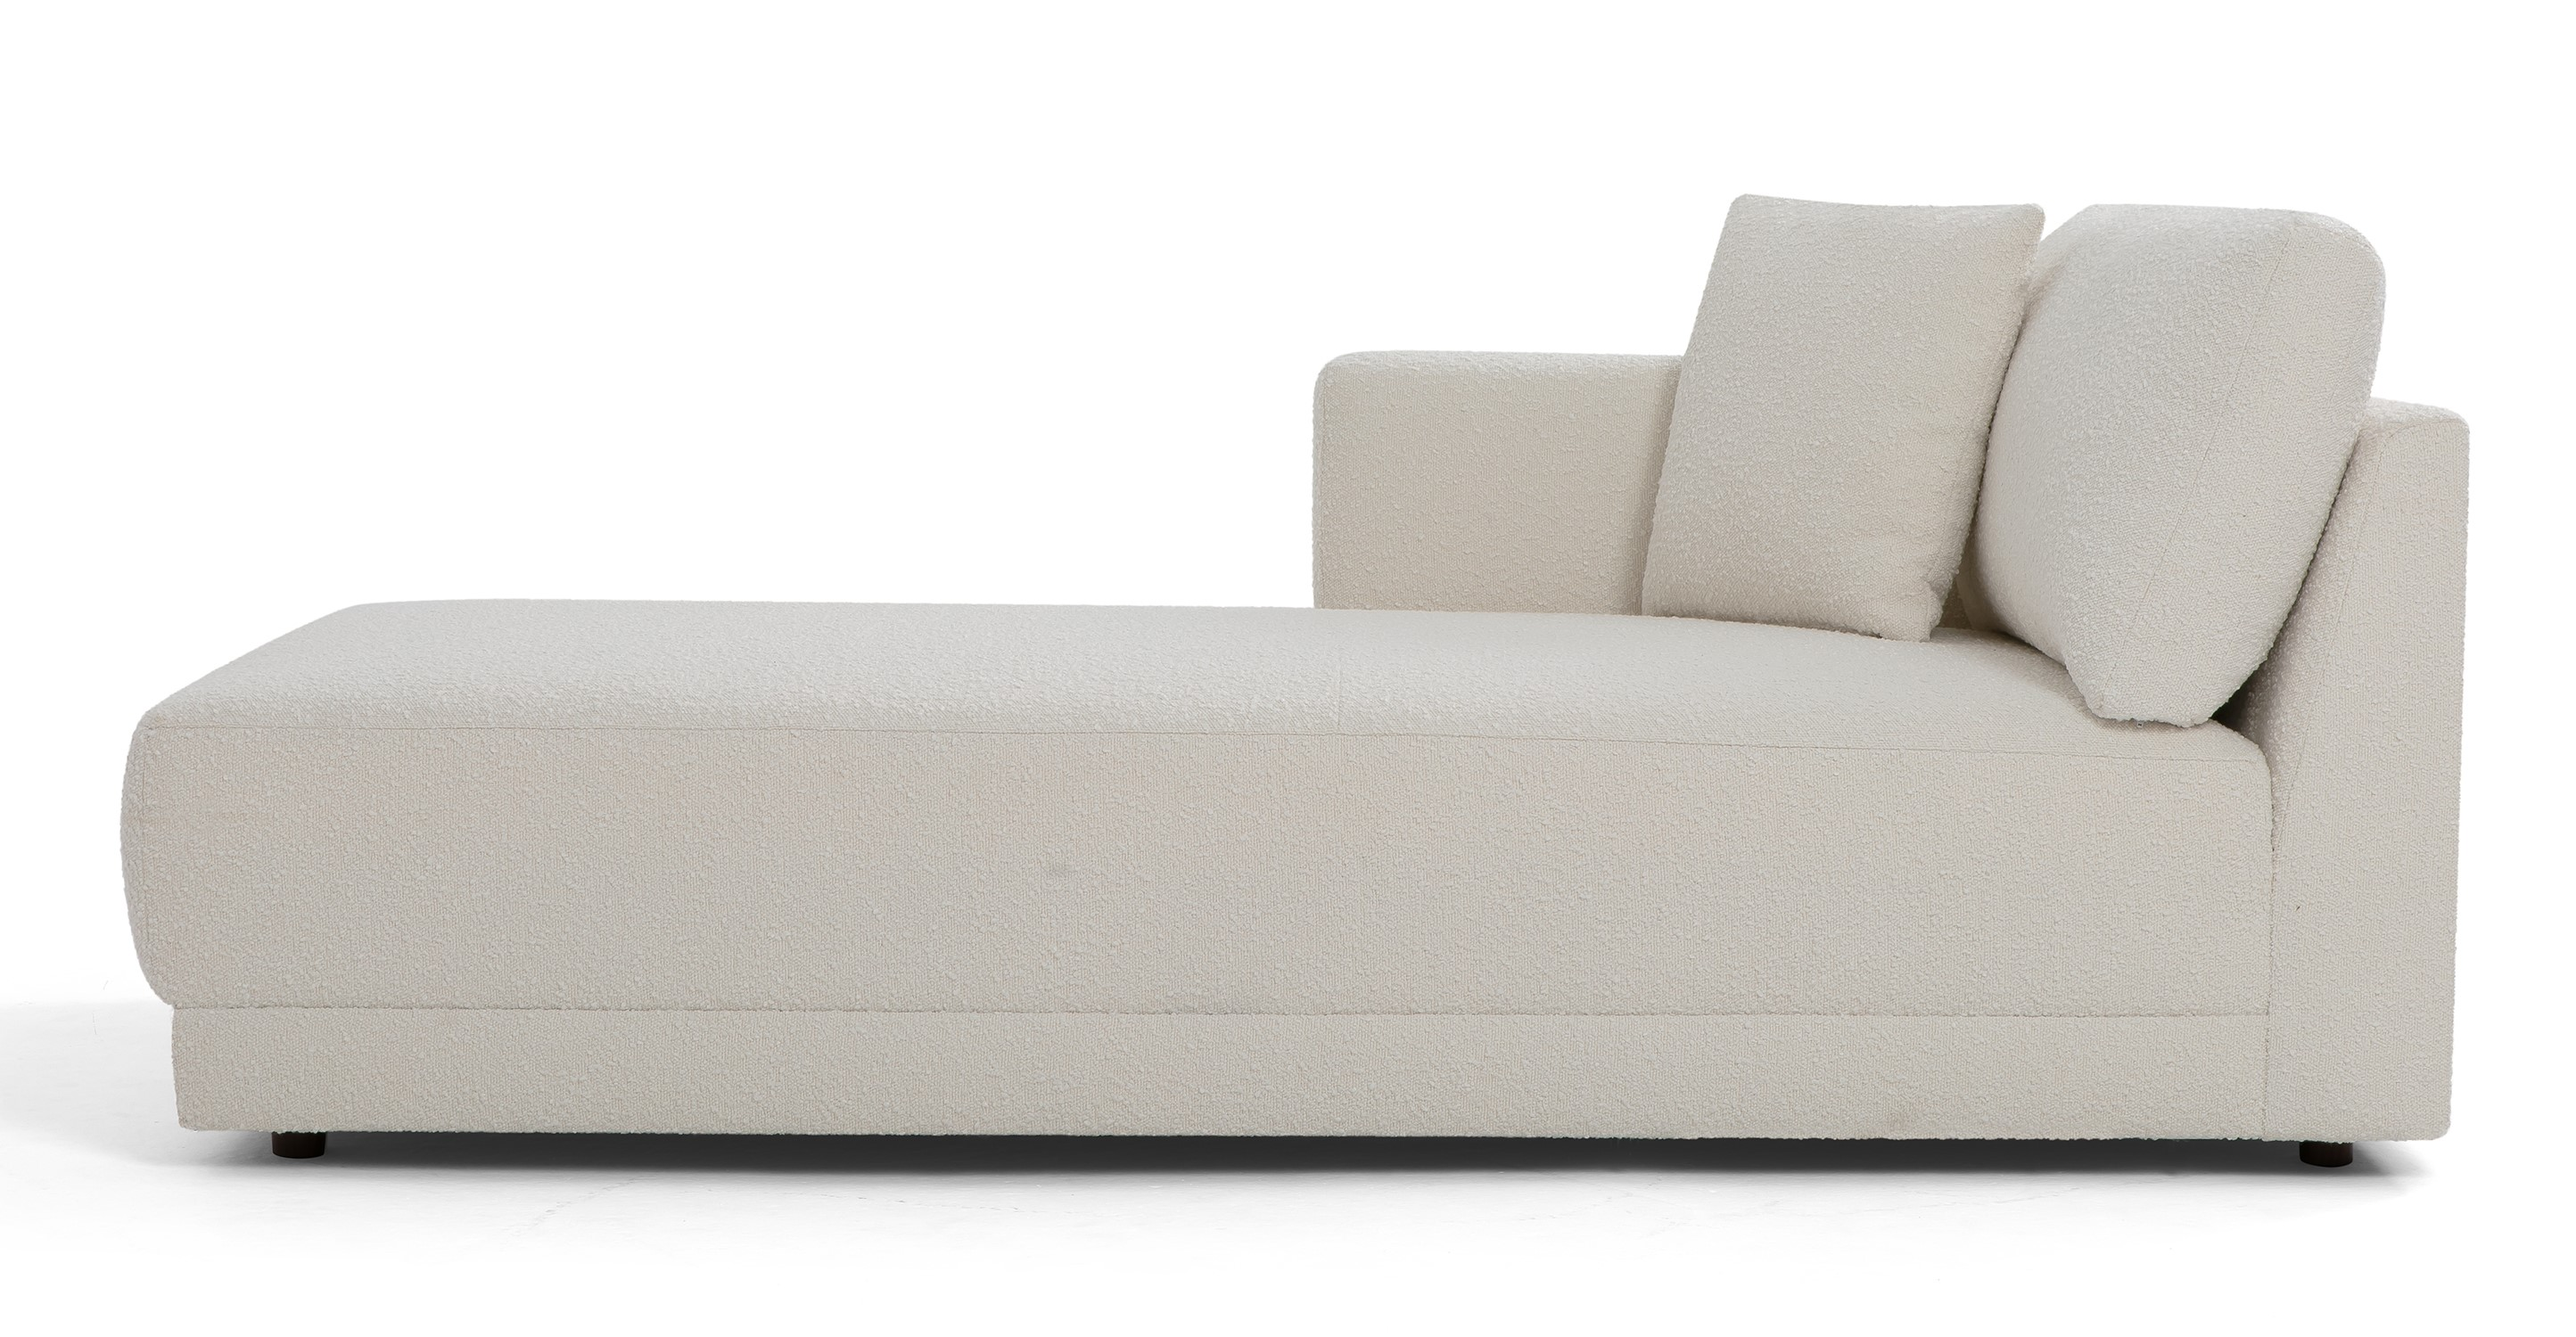 "Domus 39"" Left Chaise Fabric Sofa, Blanc Boucle"